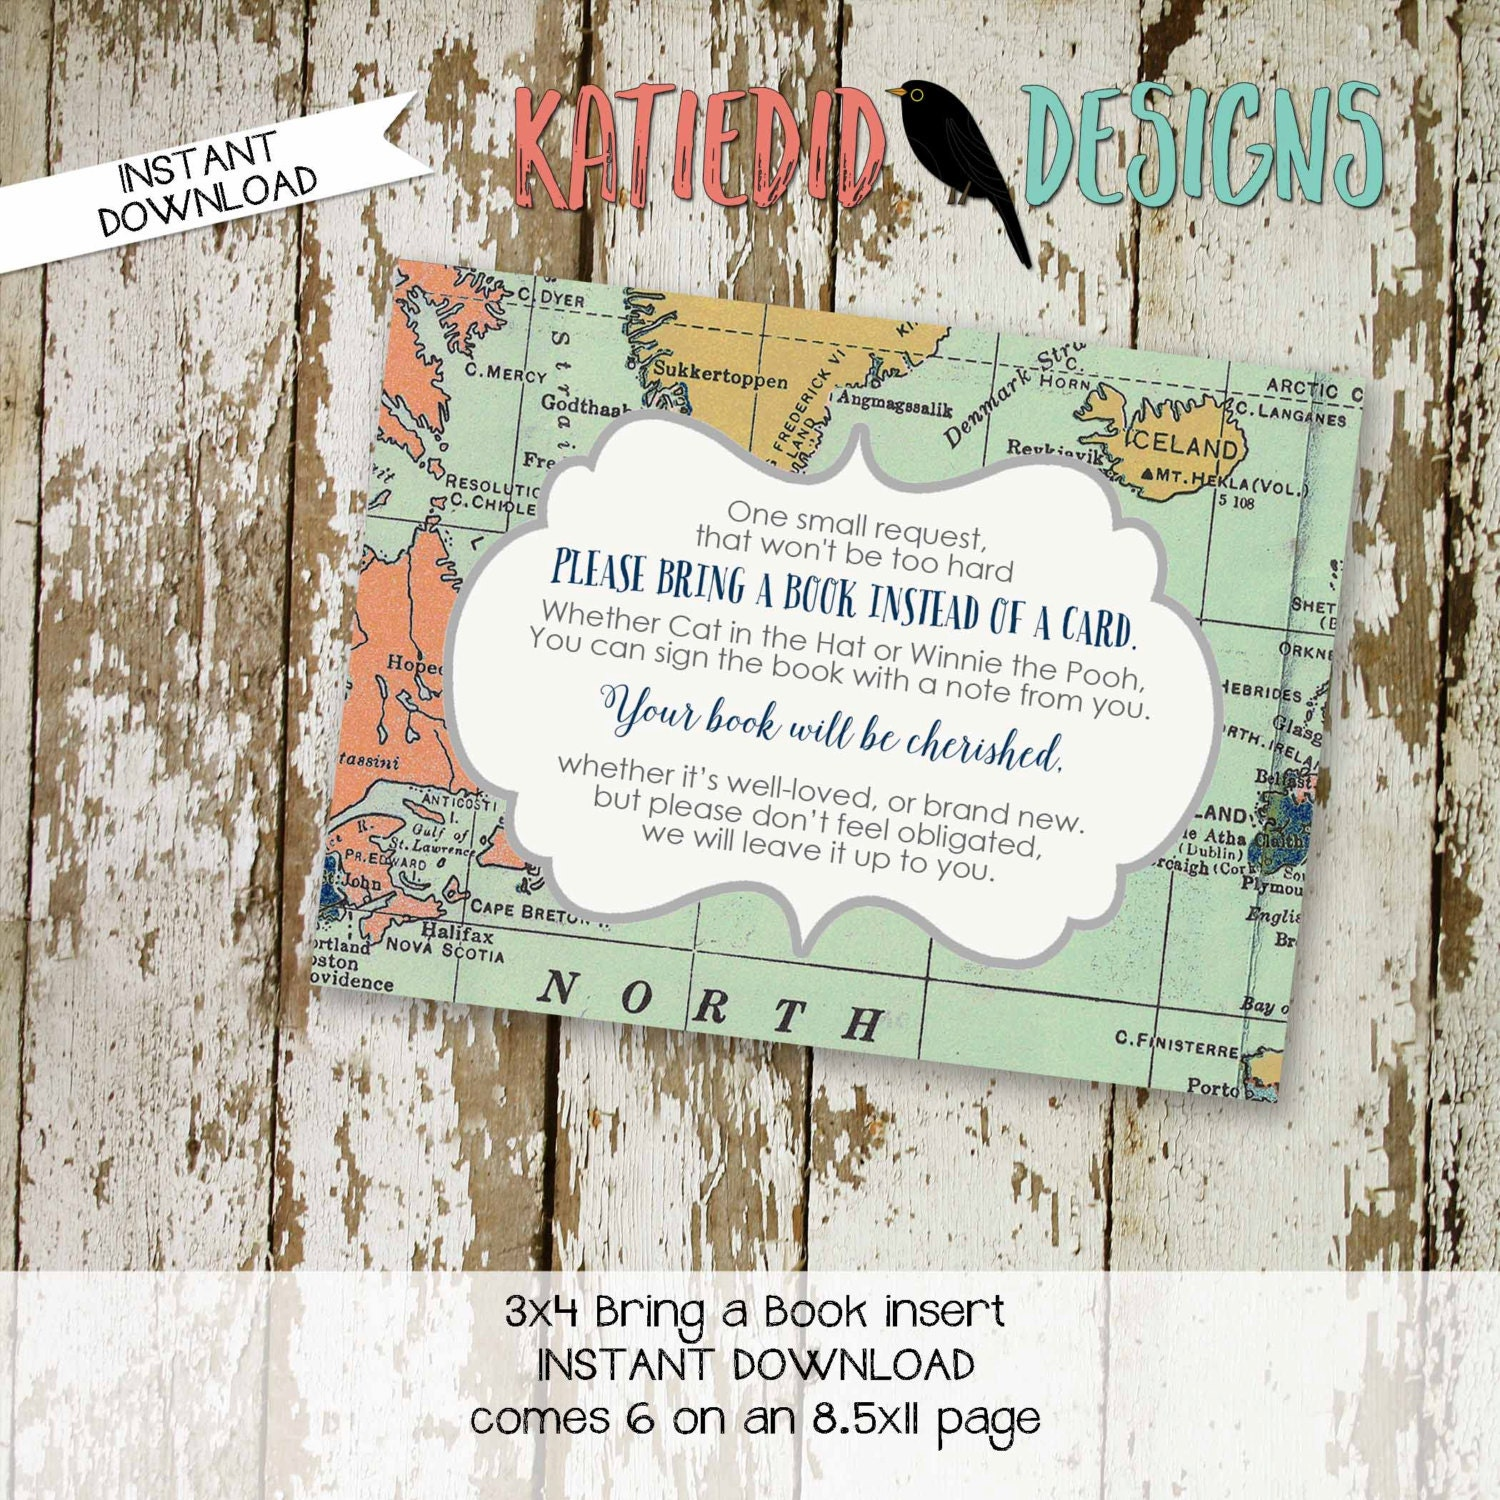 Travel theme baby shower invitation insert adventure awaits world travel theme baby shower invitation insert adventure awaits world map bring a book instead of a card enclosure card 1466 katiedid designs filmwisefo